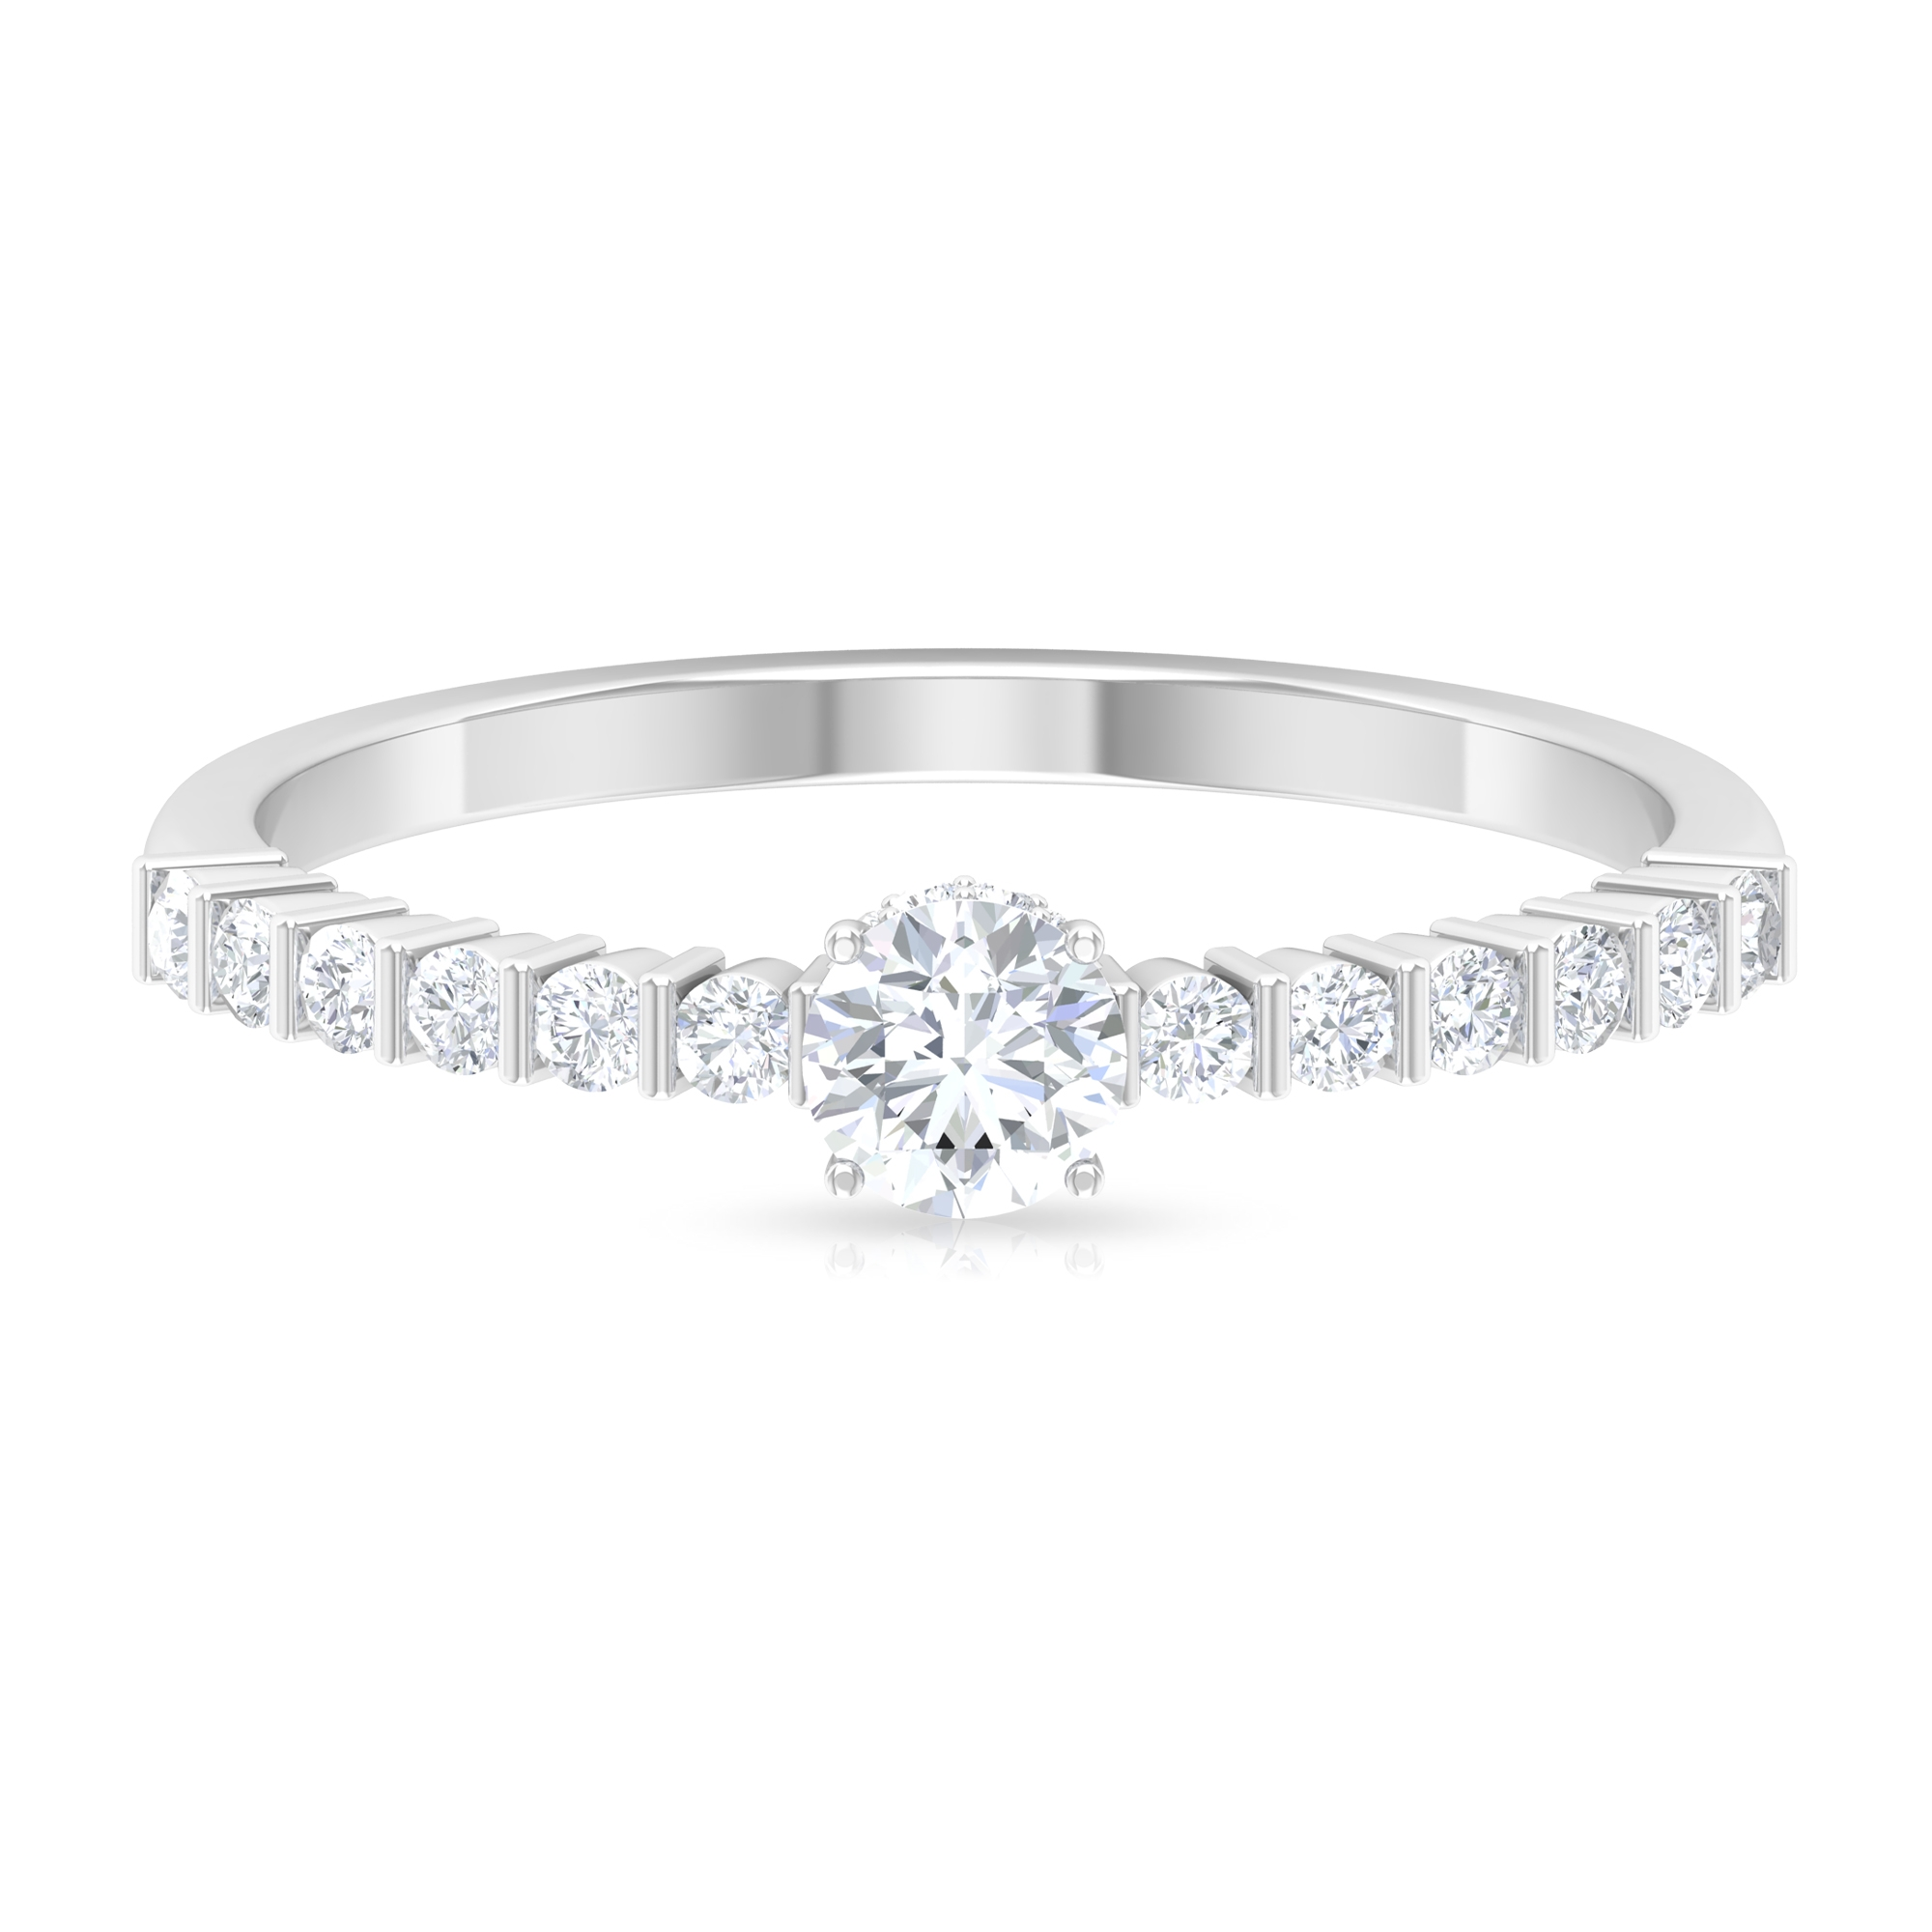 April Birthstone 1/2 CT Solitaire Diamond Ring with Hidden Halo and Bar Set Side Stones